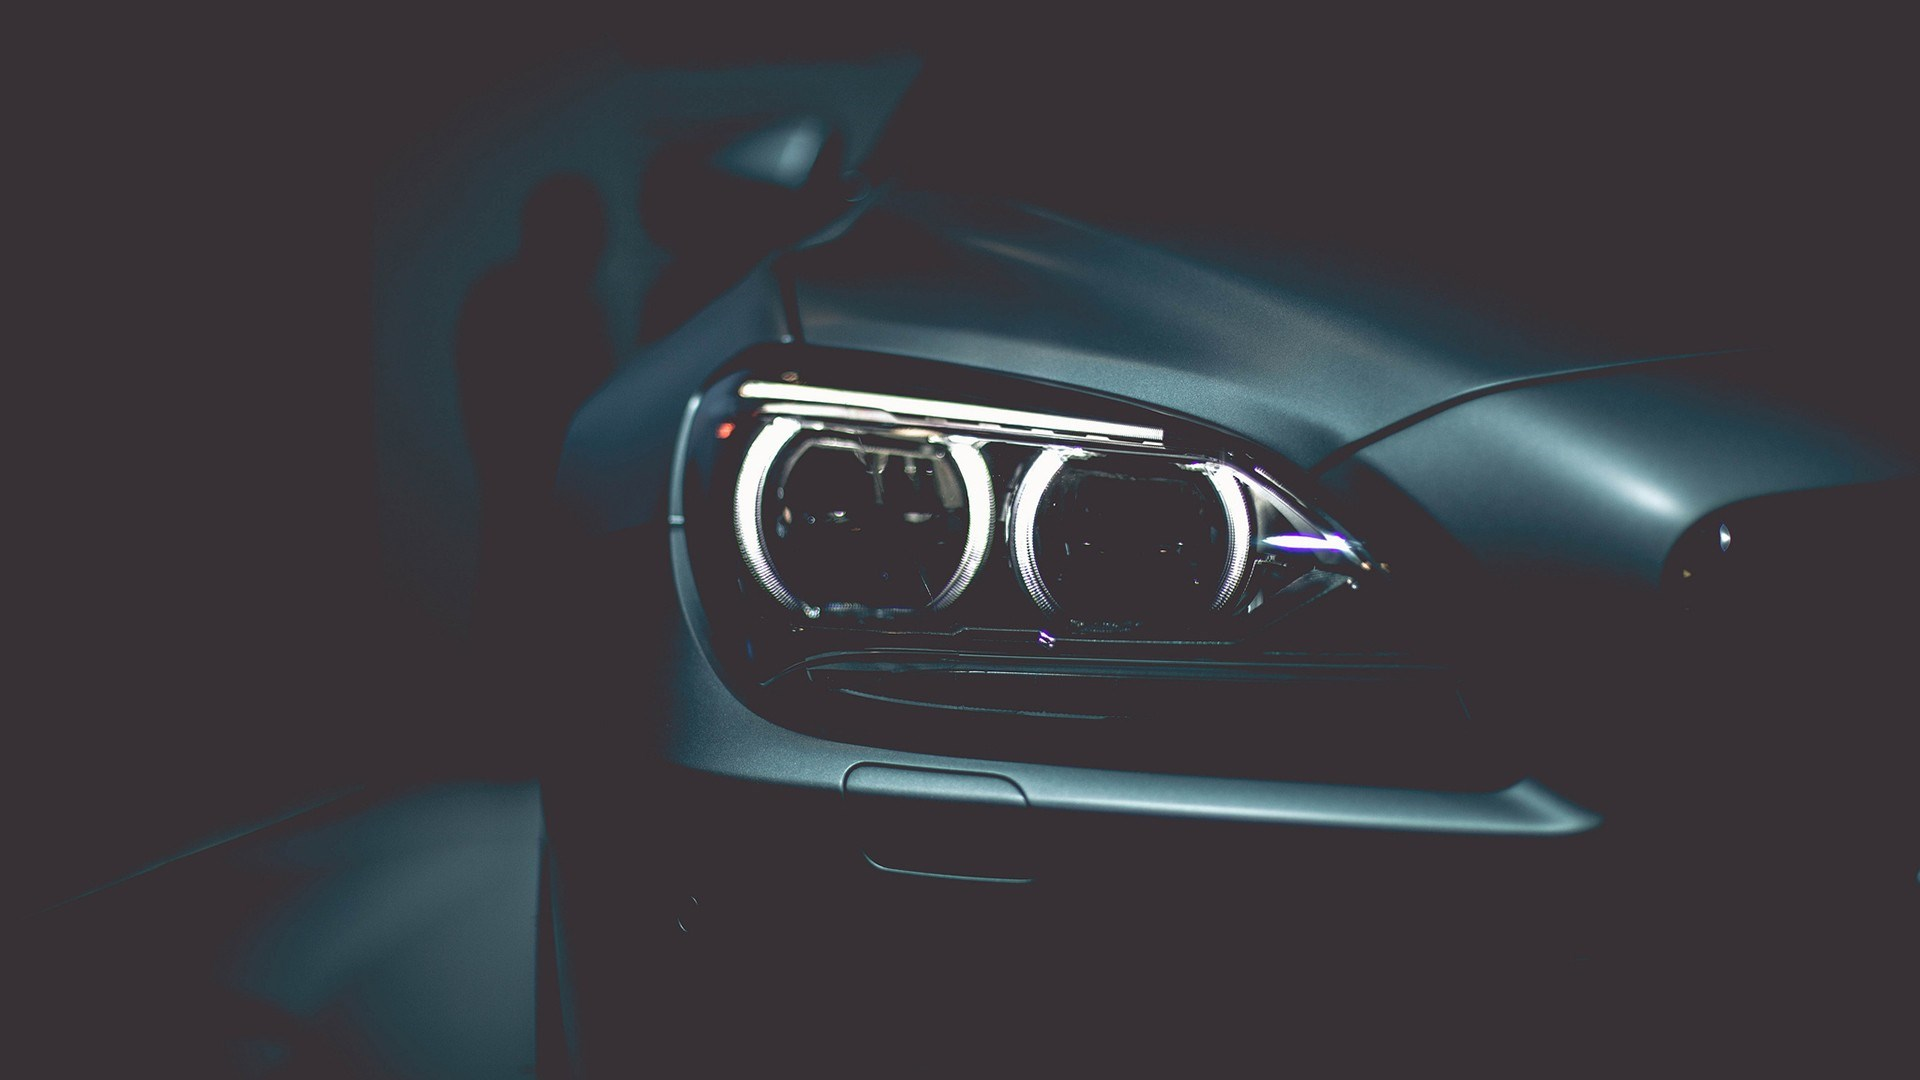 BMW Headlight Close-Up